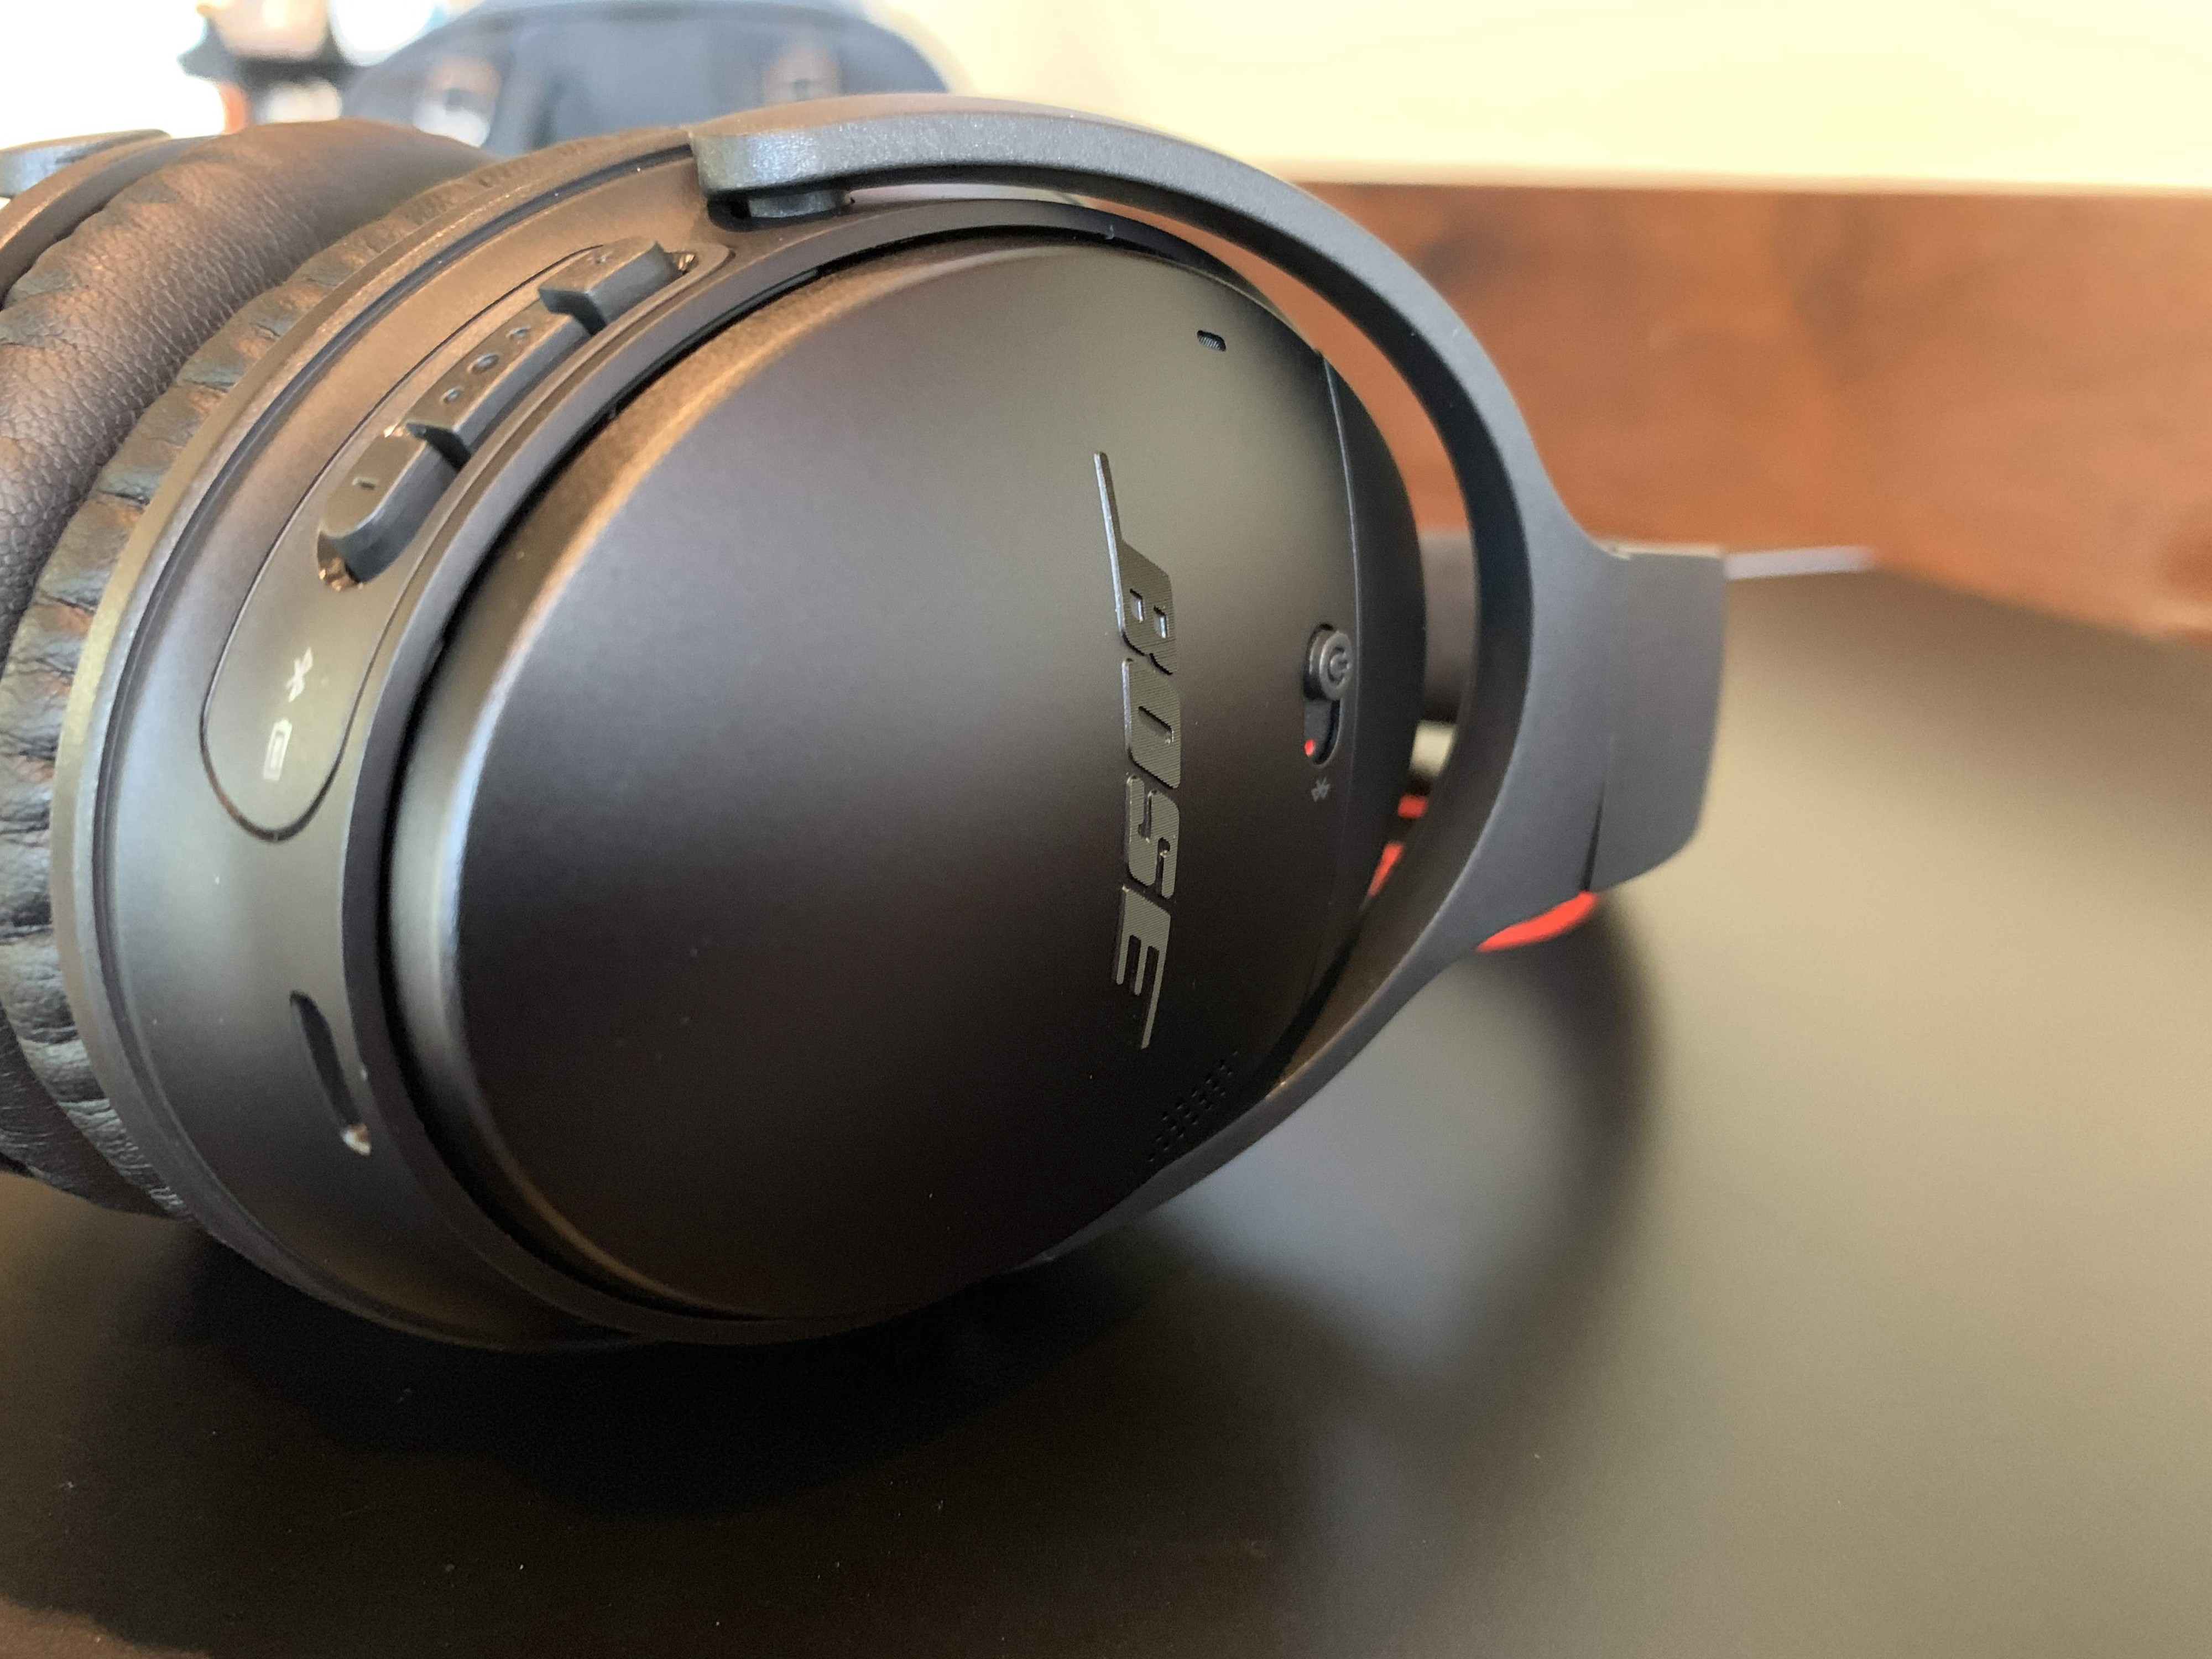 5eb6736ca05 When the Bose QC 35's first launched in 2016, I loved them. Then I went  back and forth about whether or not they were better than Sony's 1000X  model, ...